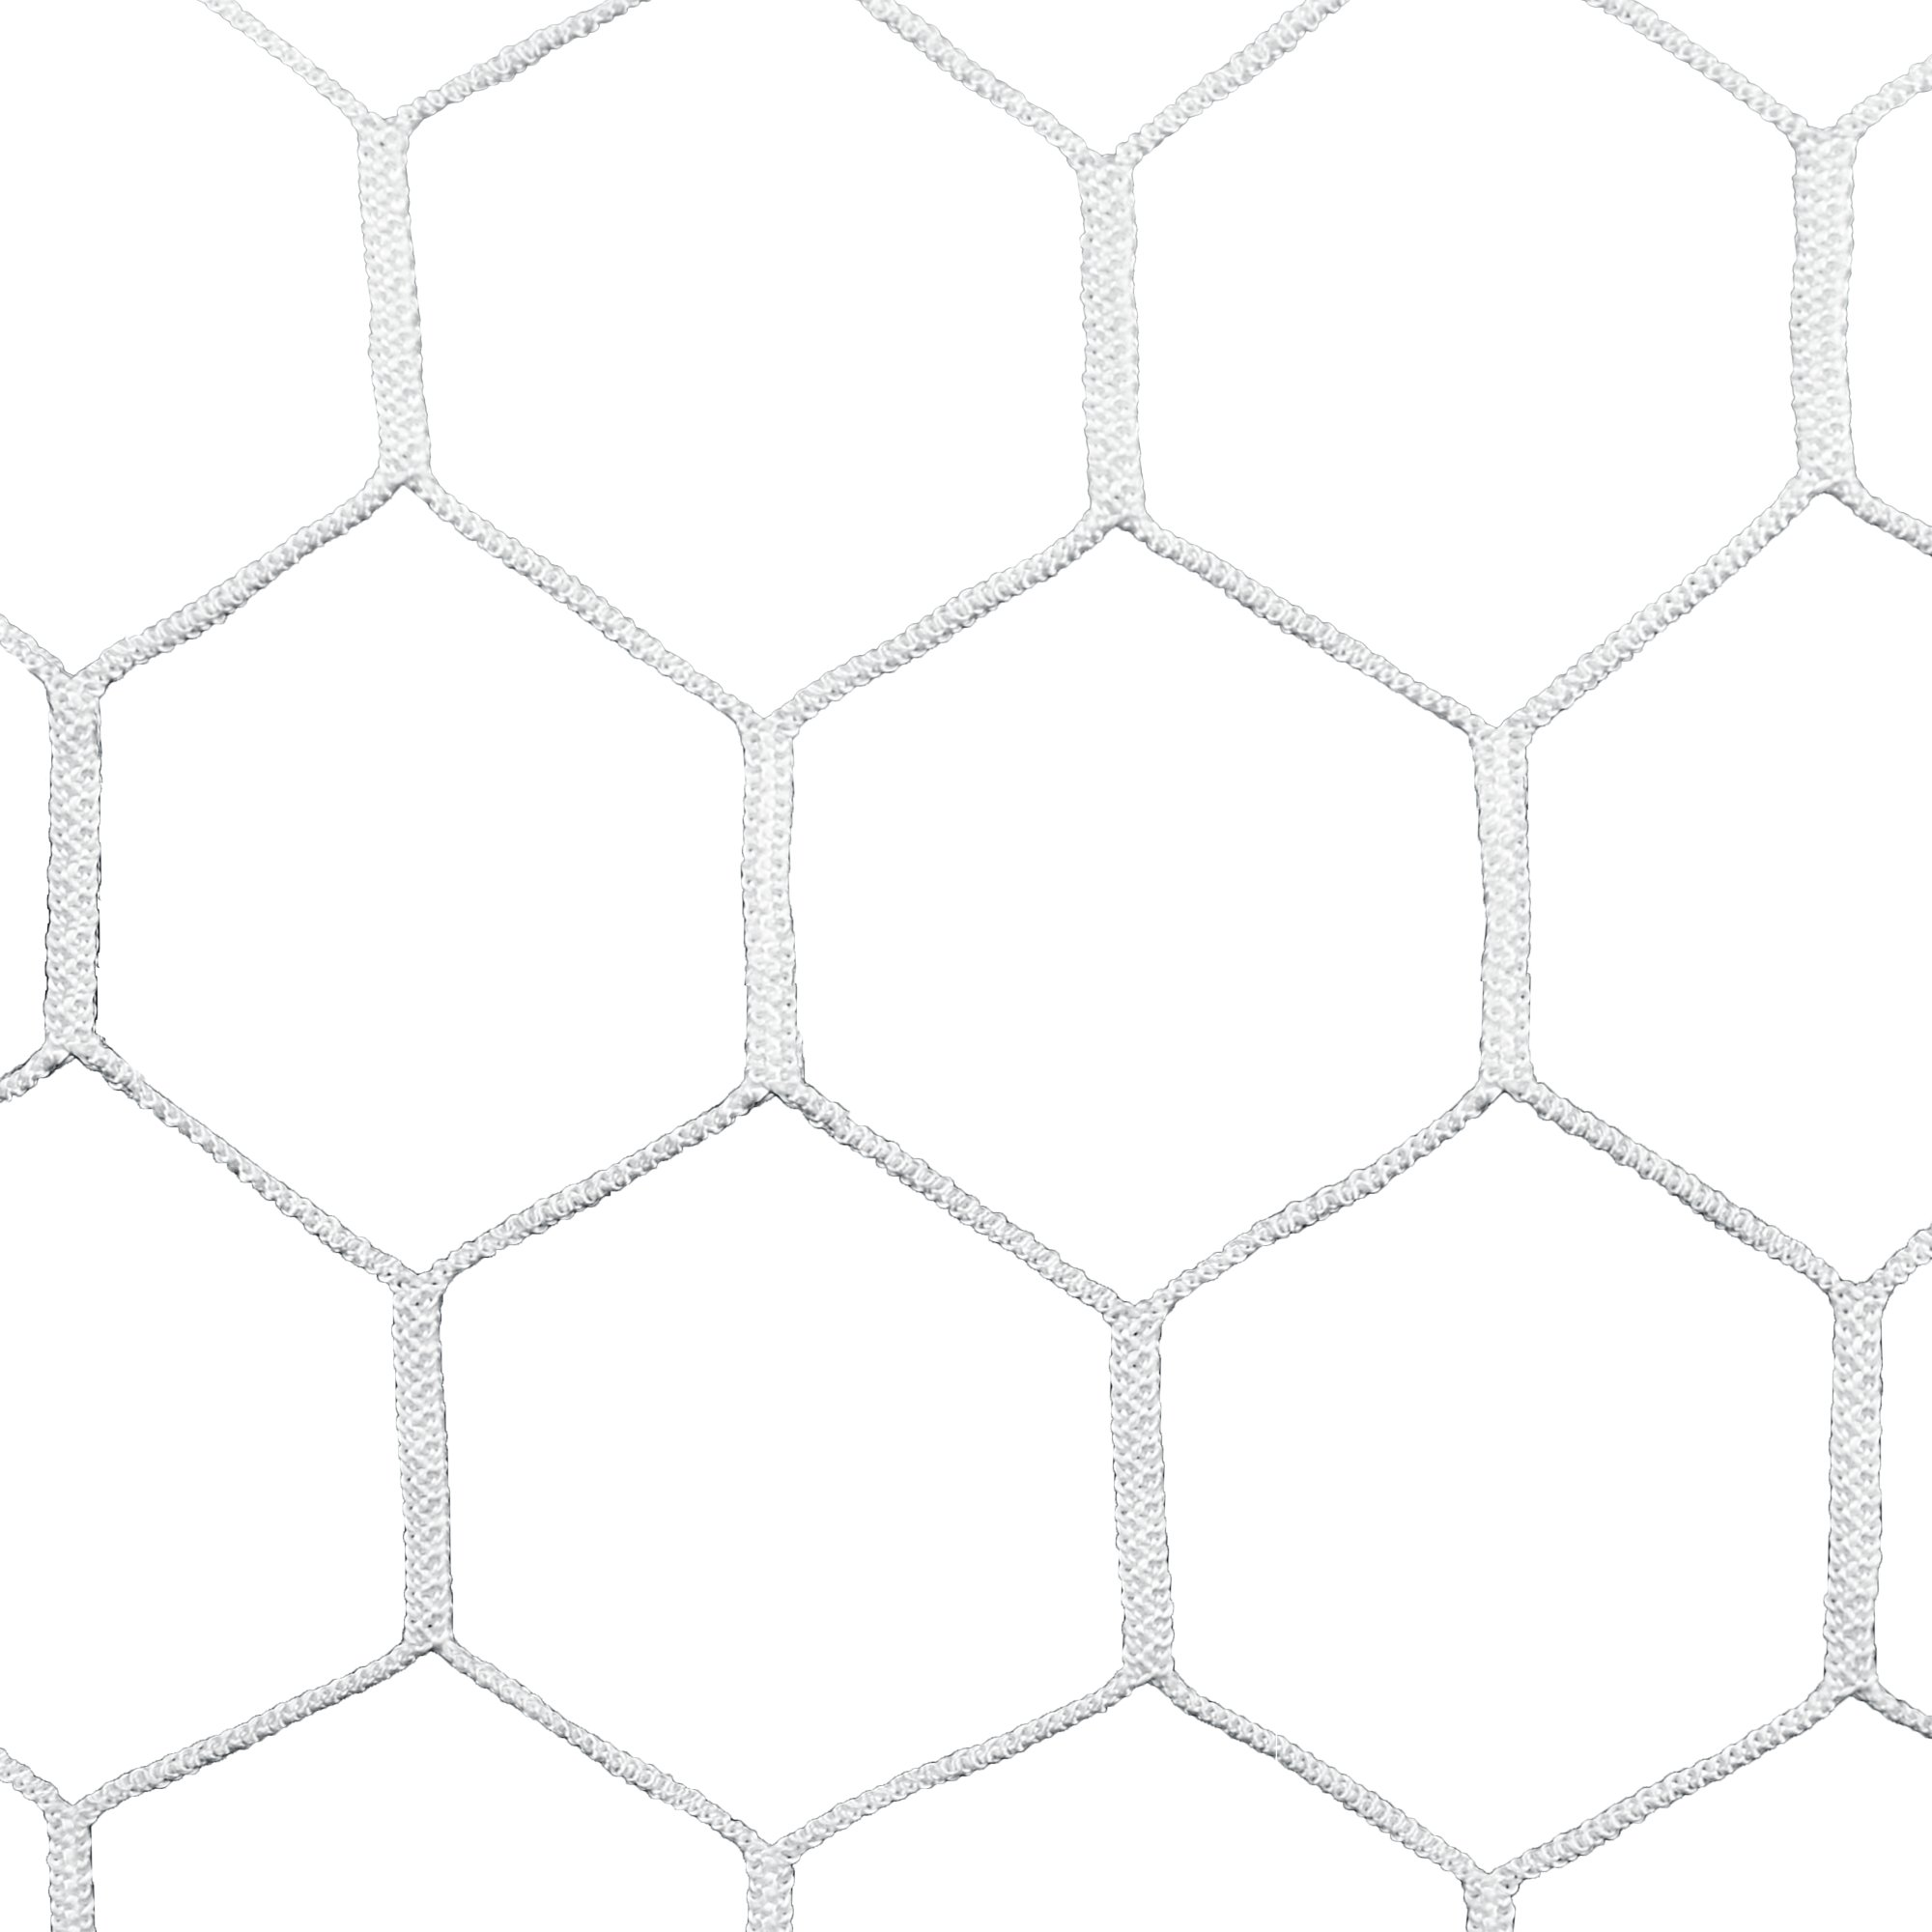 Agora 4mm HTPP Nets for 7'x21' Soccer Goals with Depth (Each)